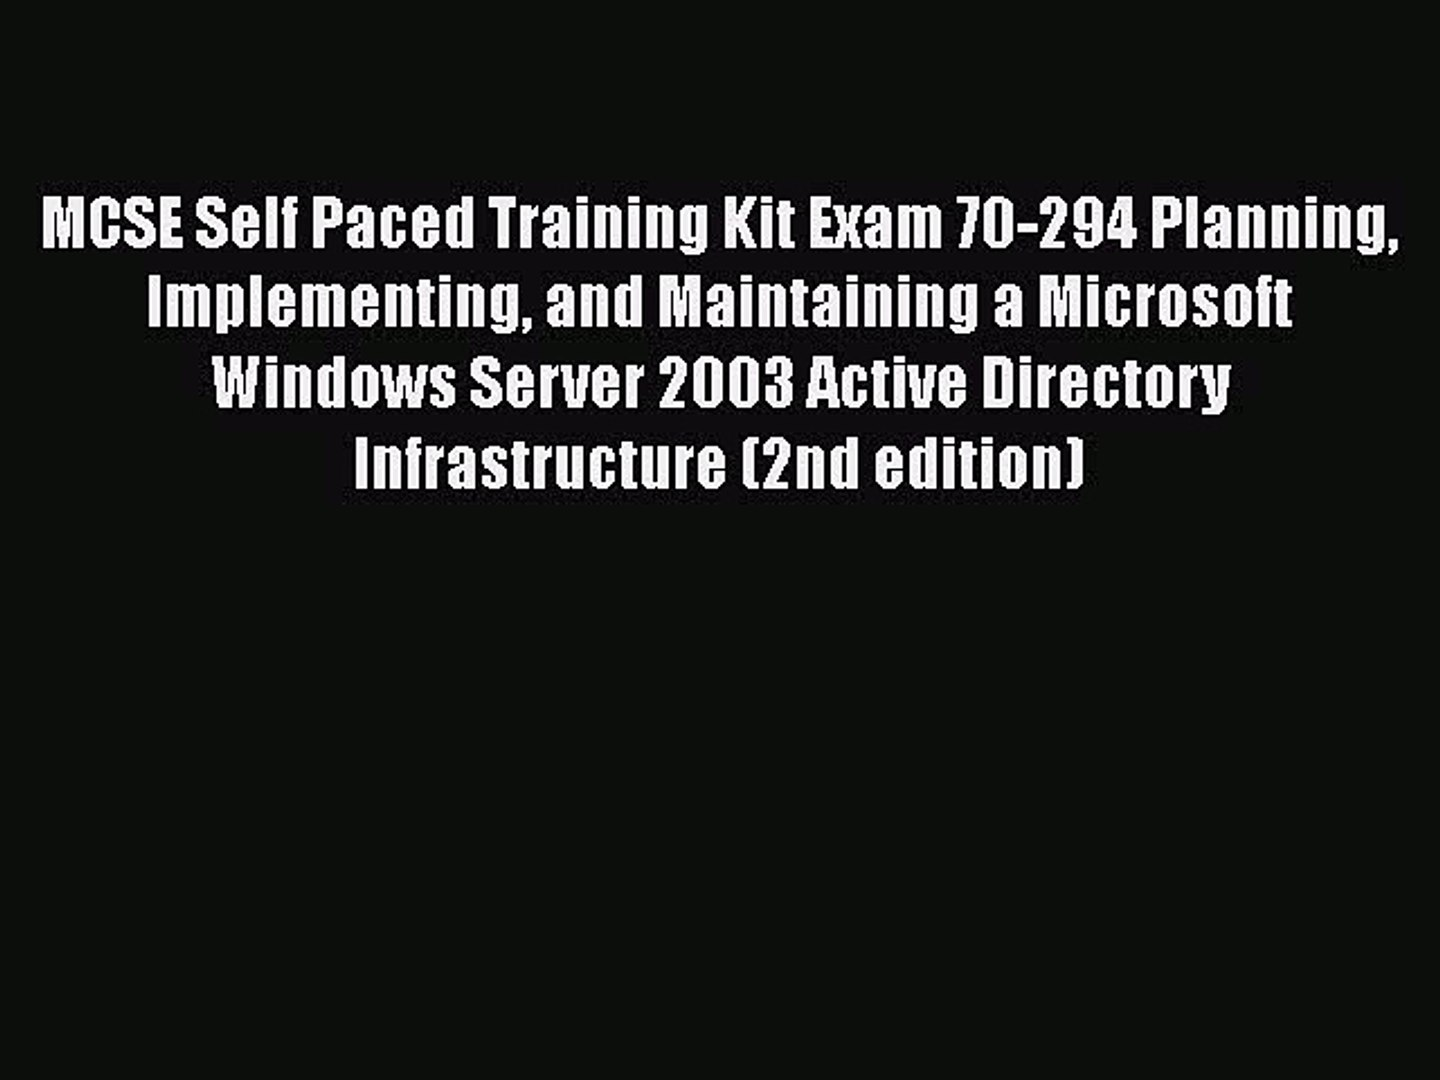 Read MCSE Self Paced Training Kit Exam 70-294 Planning Implementing and Maintaining a Microsoft